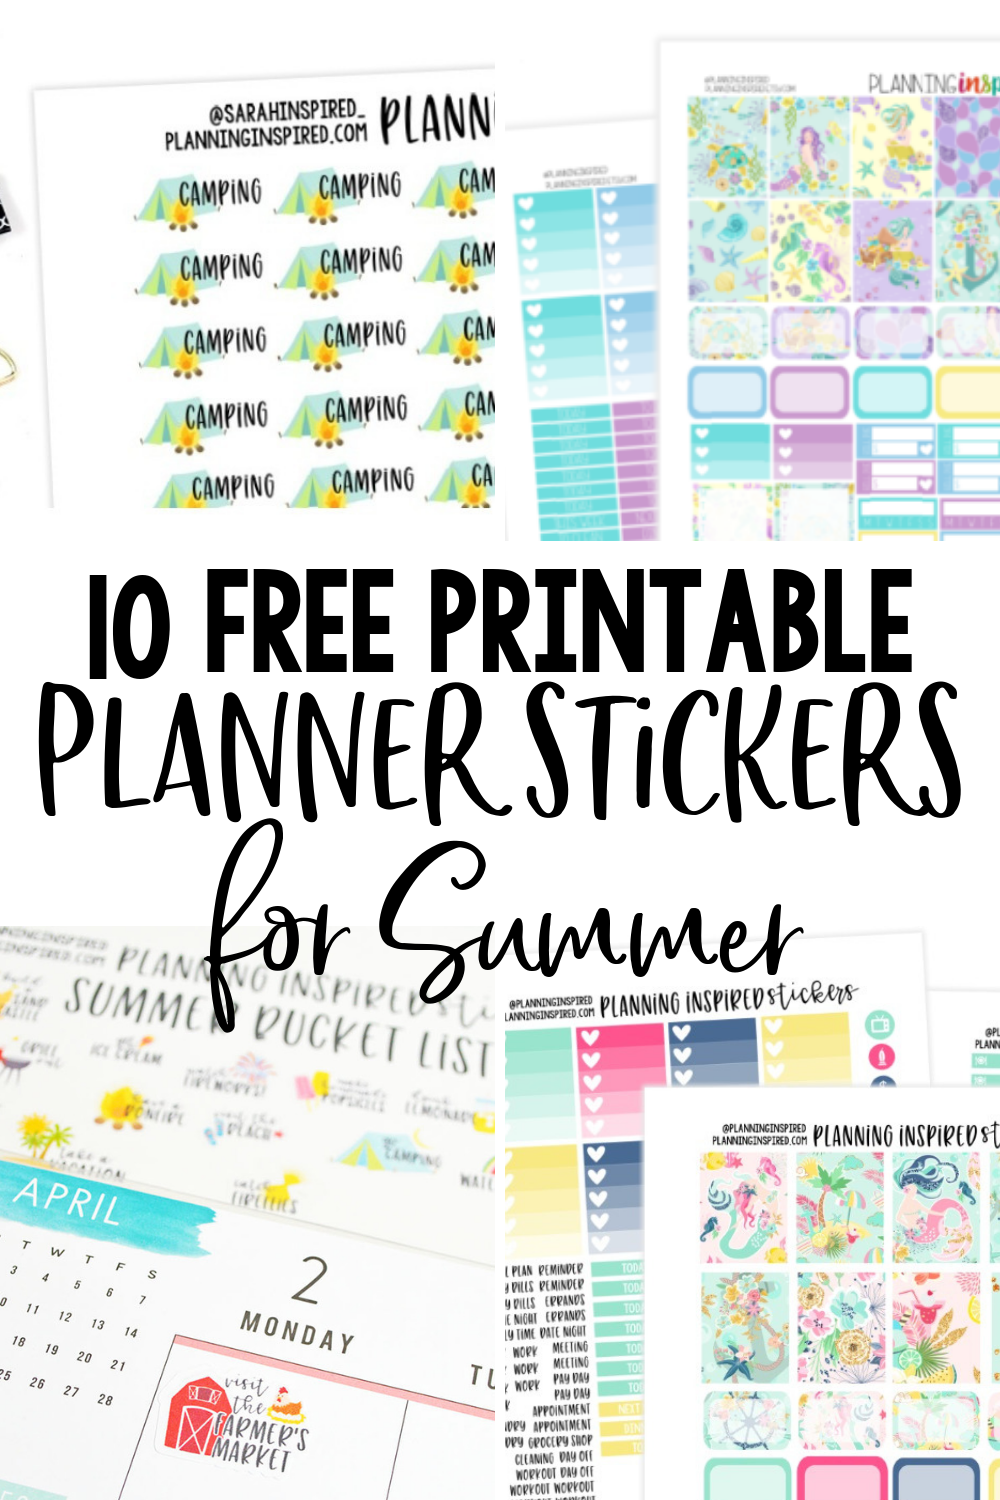 picture about Free Printable Food Planner Stickers named 10 Totally free Printable Planner Stickers for Summer season - Building